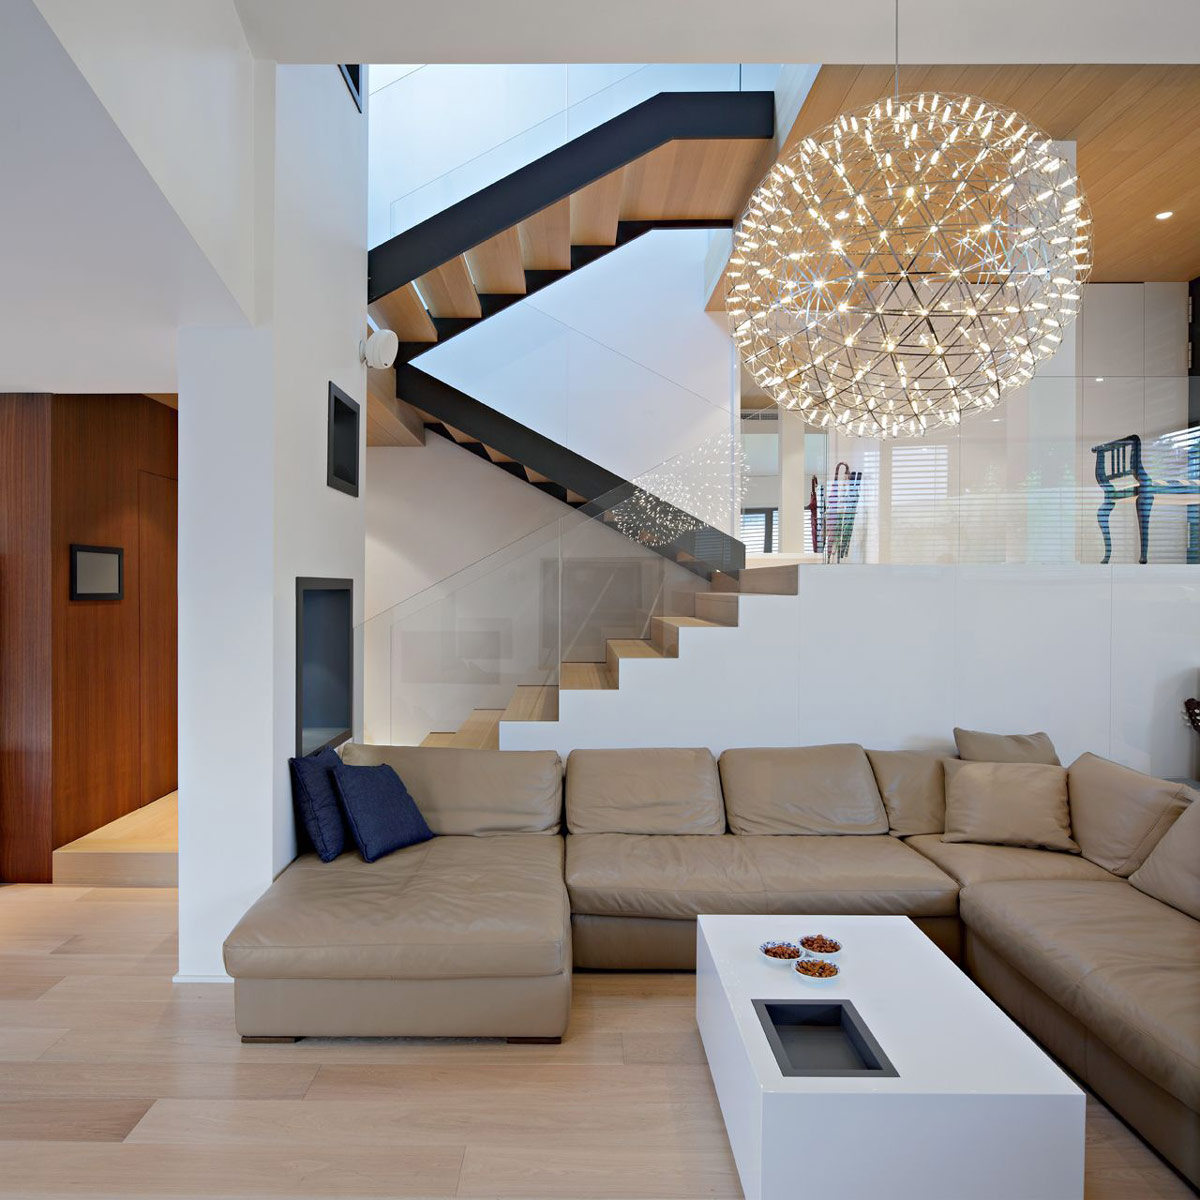 Sofa, Lighting, Stairs, A+A House in Zagreb, Croatia by DVA Arhitekta